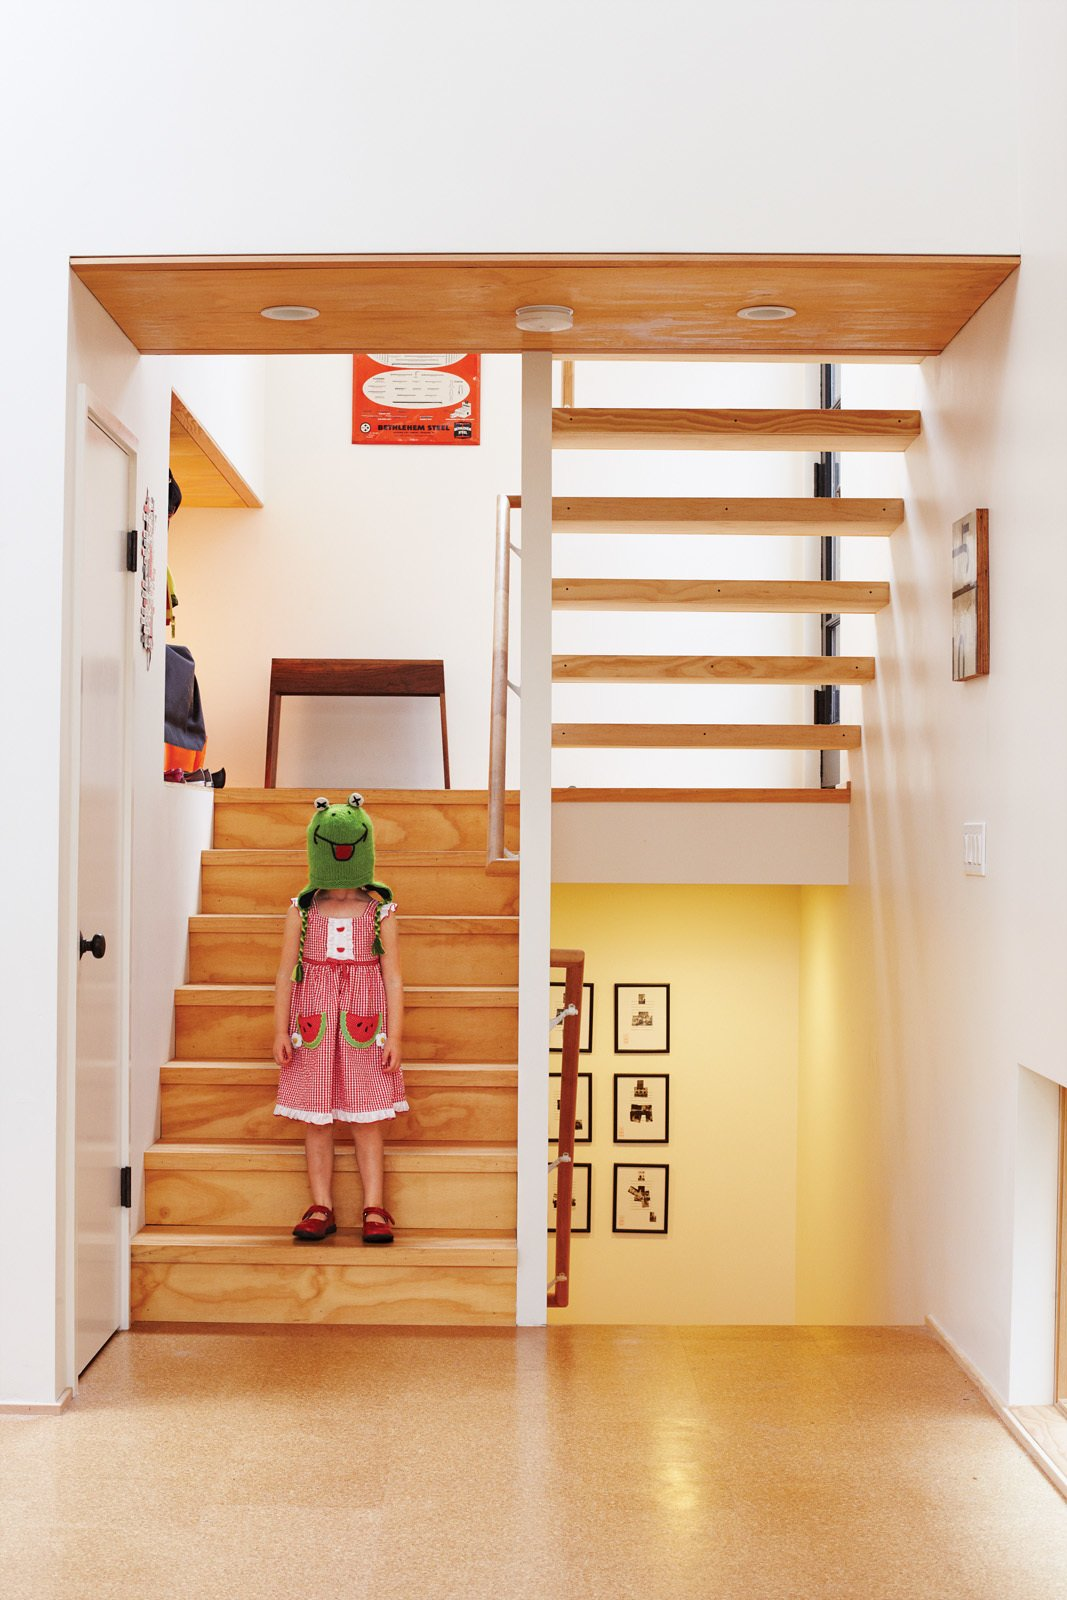 Just inside, Pippa, one half of the ever-entertaining twins, goofs around on the stairs leading from the entrance to the main floor and the bedrooms below.  Photo 2 of 21 in A New Slant